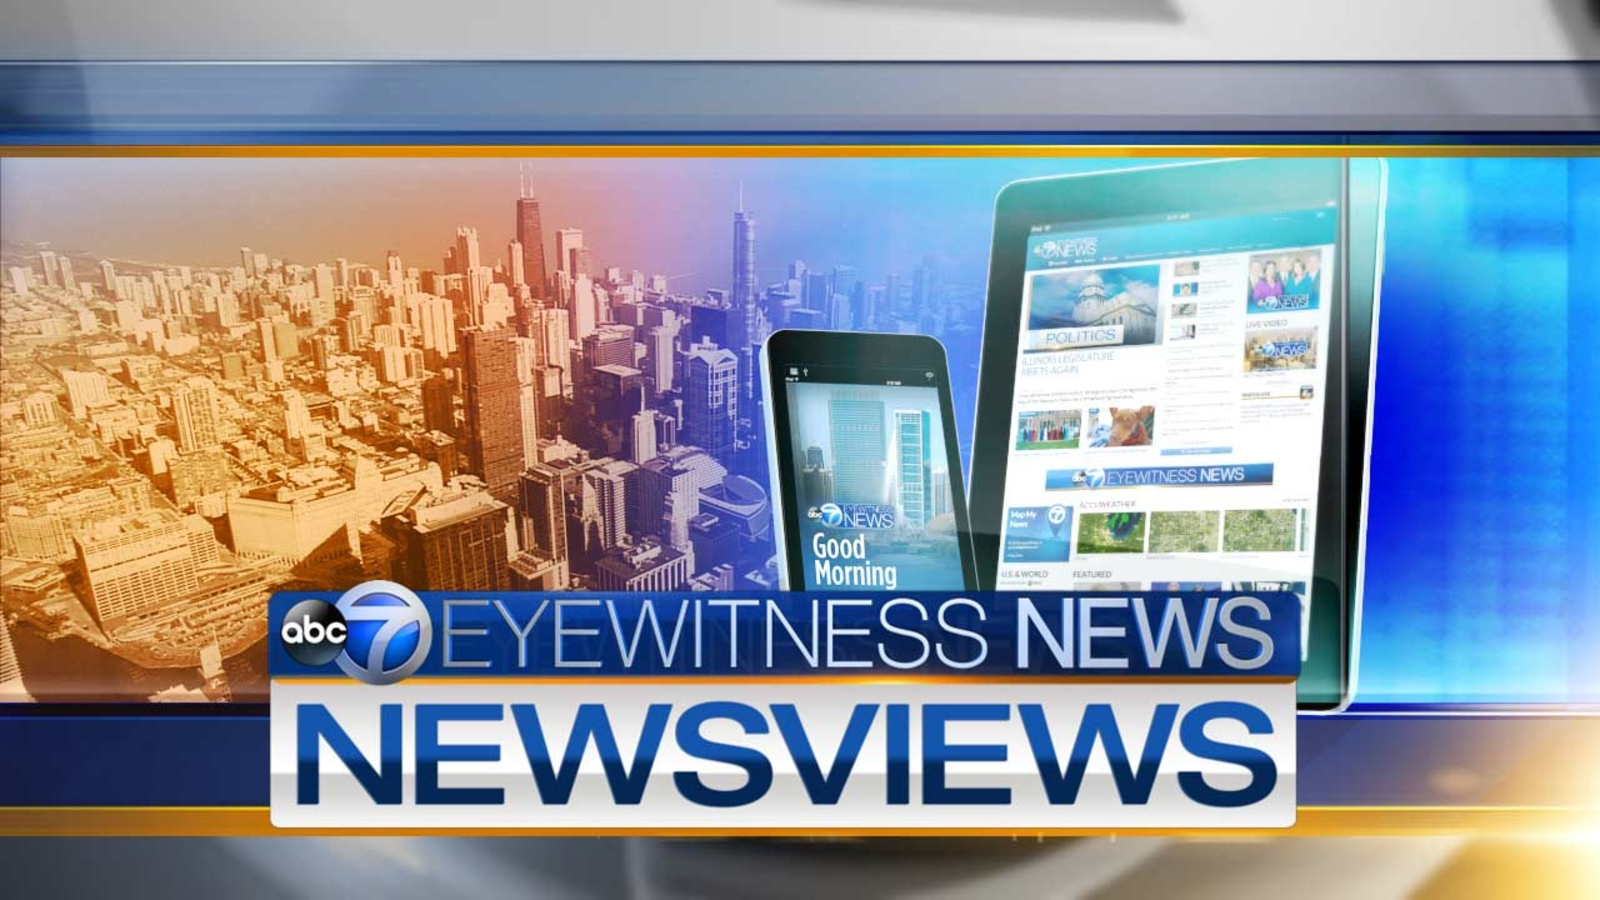 Newsviews: Chicago's Real Estate Market